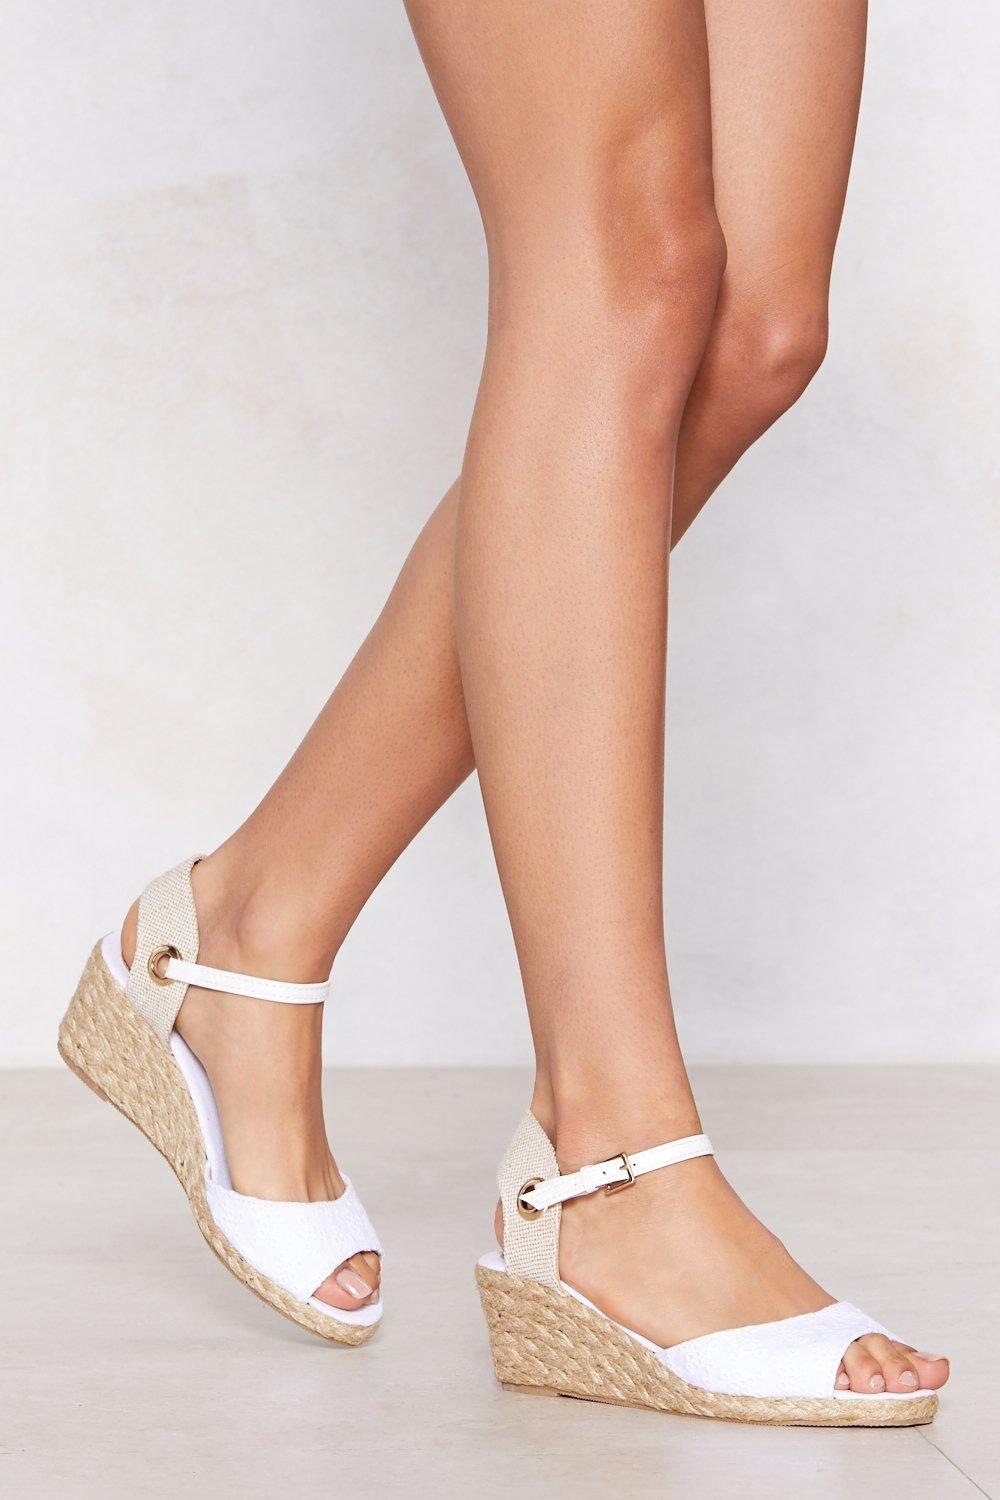 It's Up to You Broderie Anglaise Wedge Sandal best place sale online fashionable online cheap price for sale P2xwOLQss